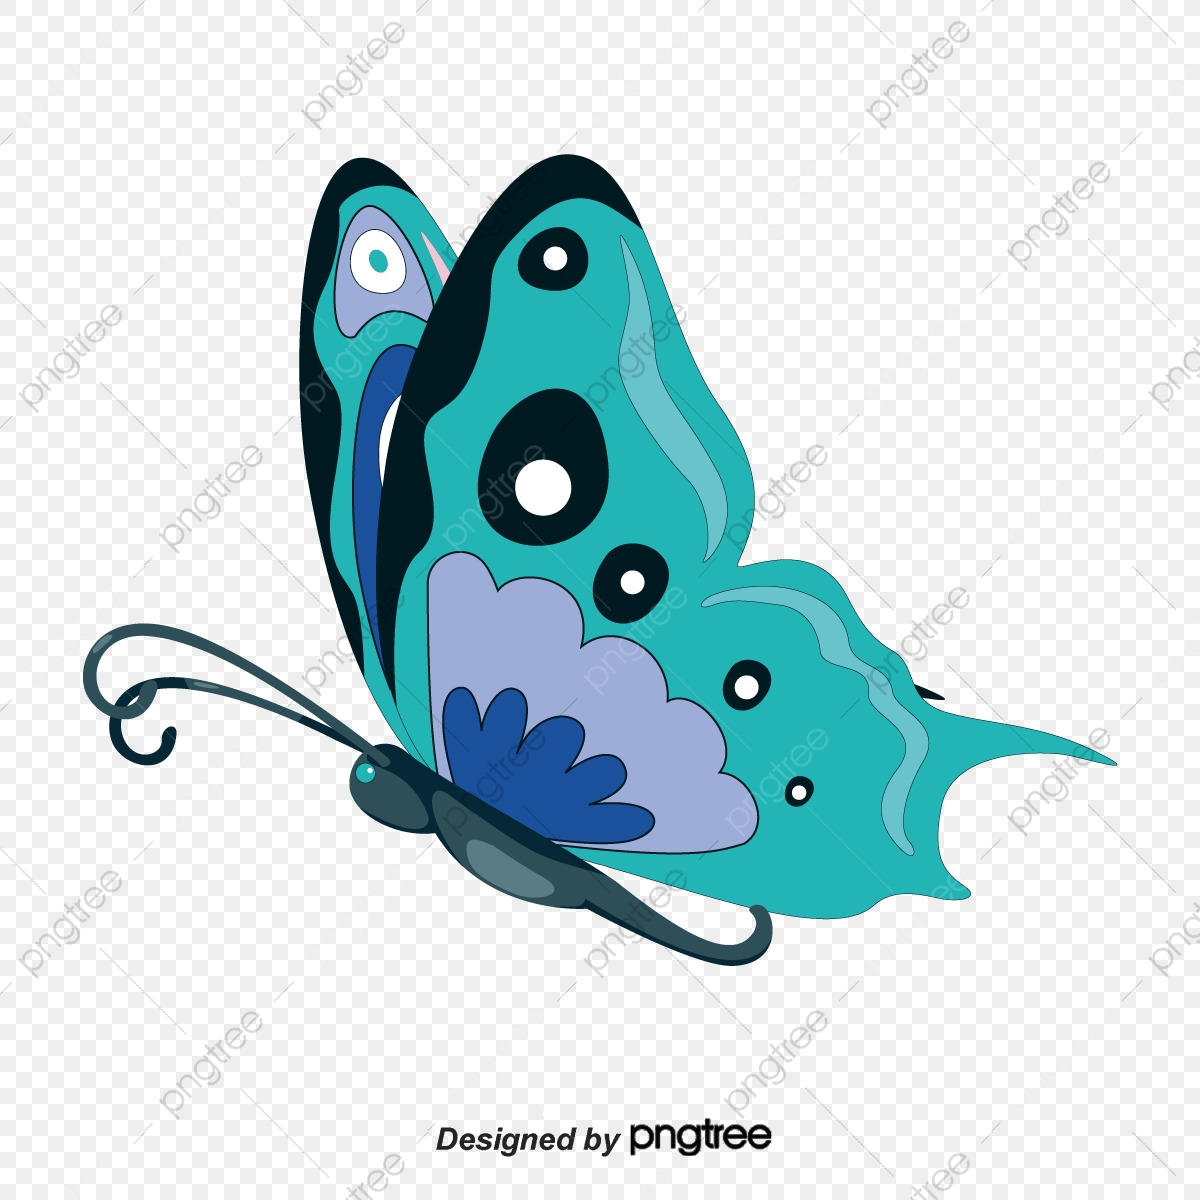 Flying Butterfly Clipart Butterfly Clipart Butterfly Vector Wings Png And Vector With Transparent Background For Free Download